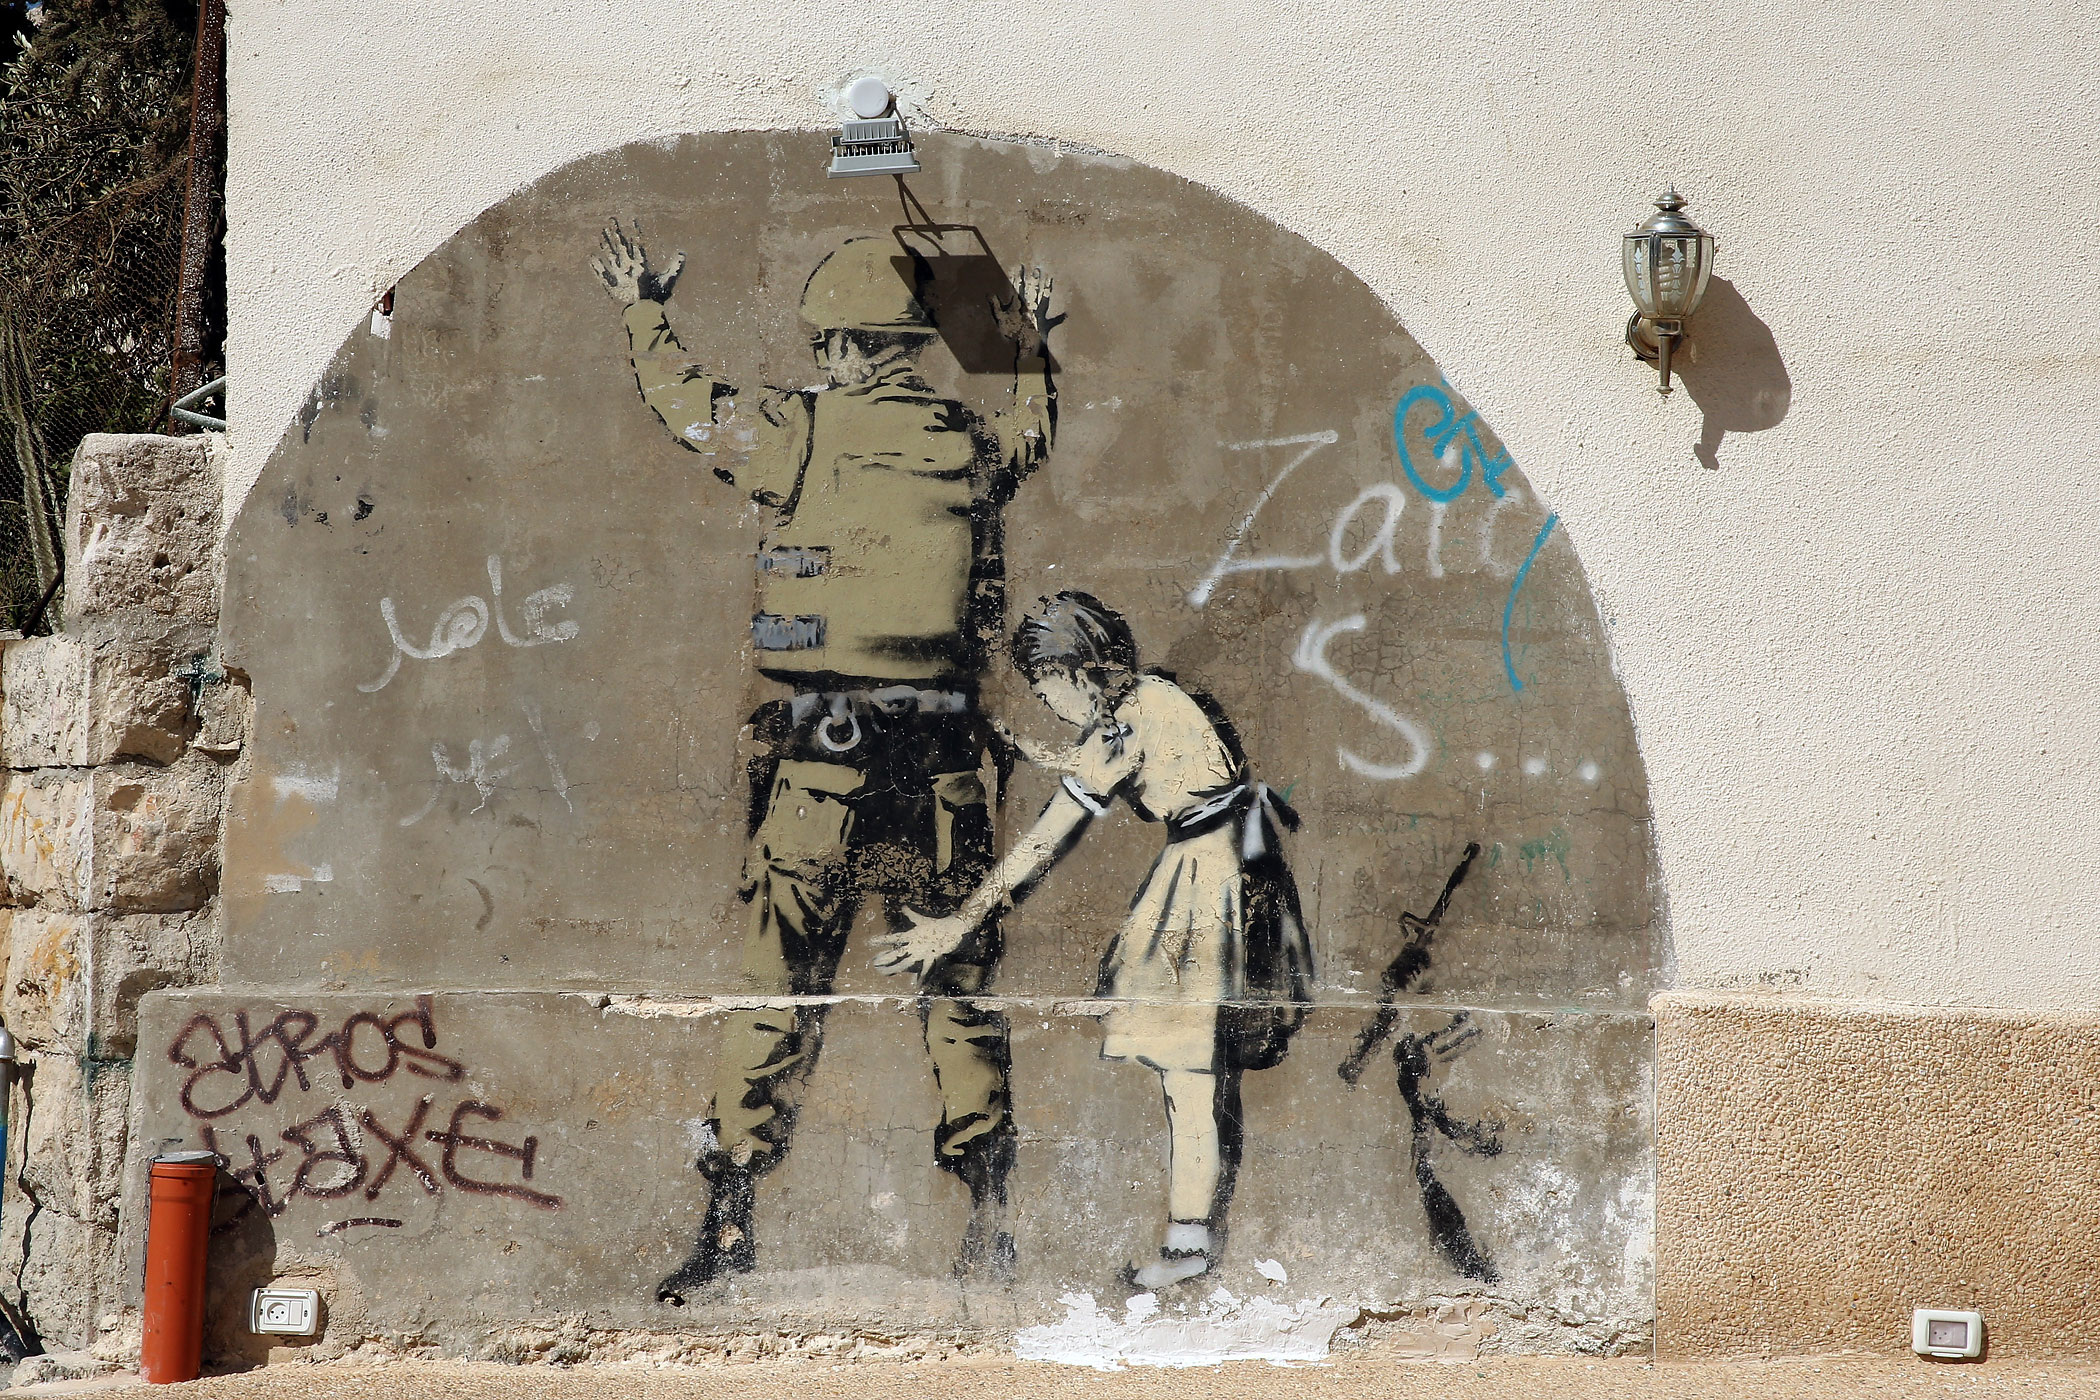 A Banksy wall painting seen on the apartheid wall near Bethlehem on June 16, 2013 in central West Bank, Palestine.